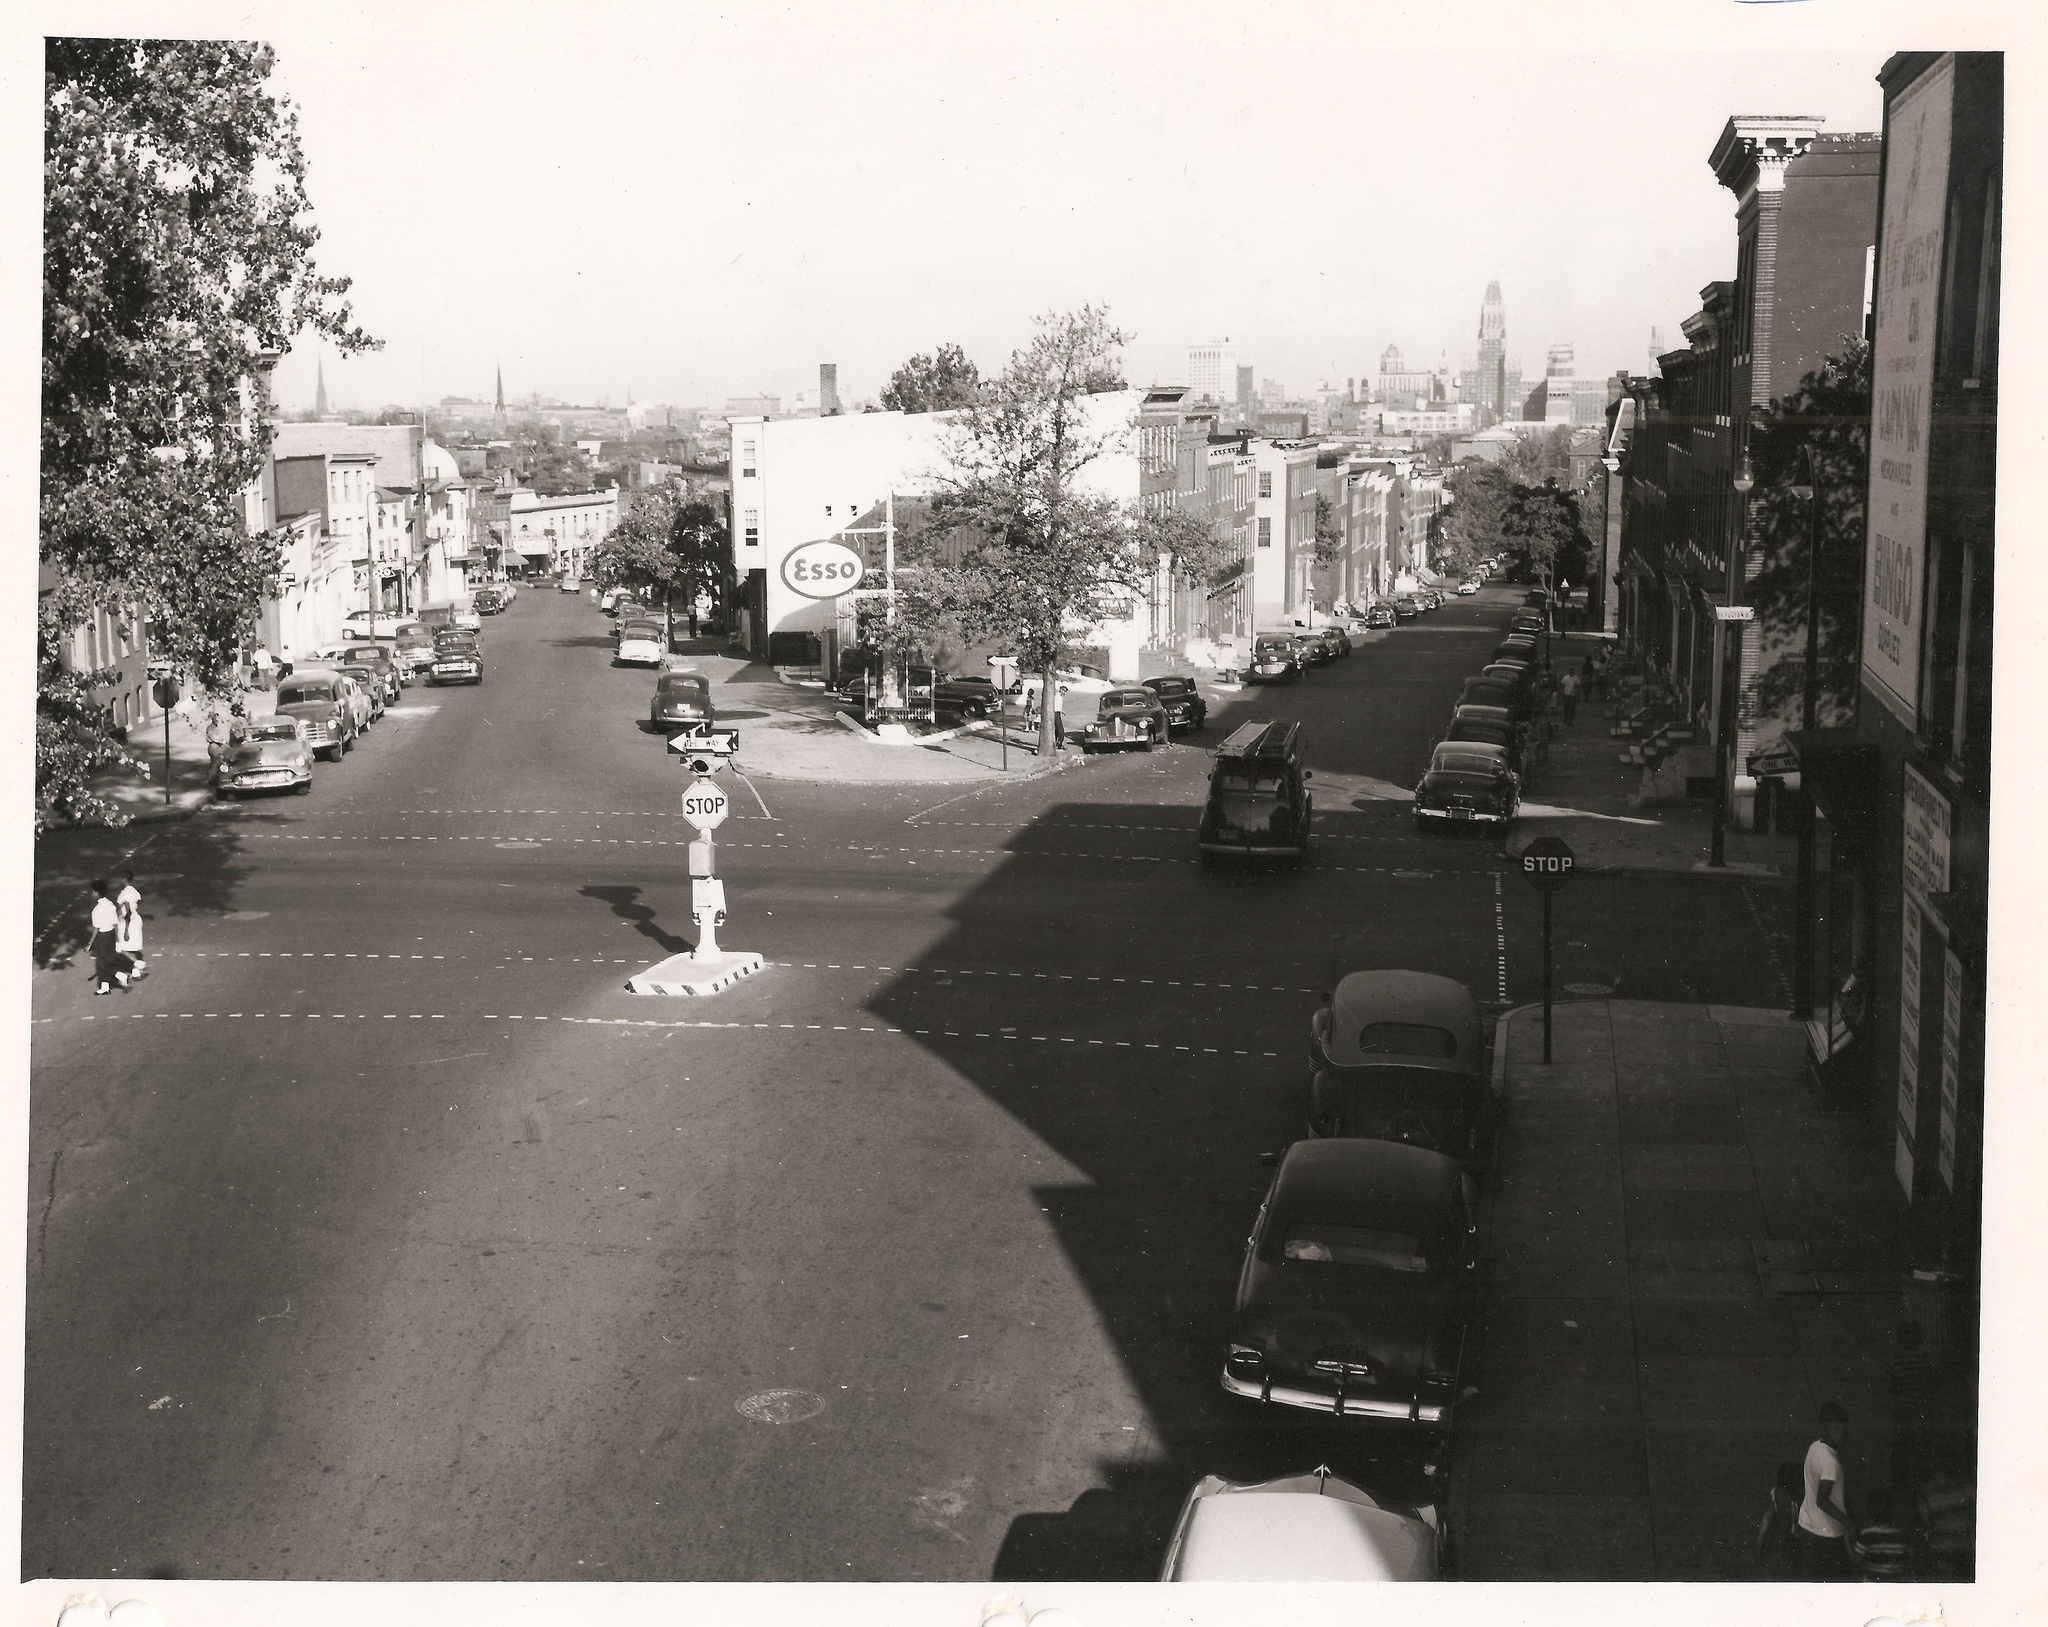 Then and Now: Intersection of Fulton, Hollins, and Frederick in 1954